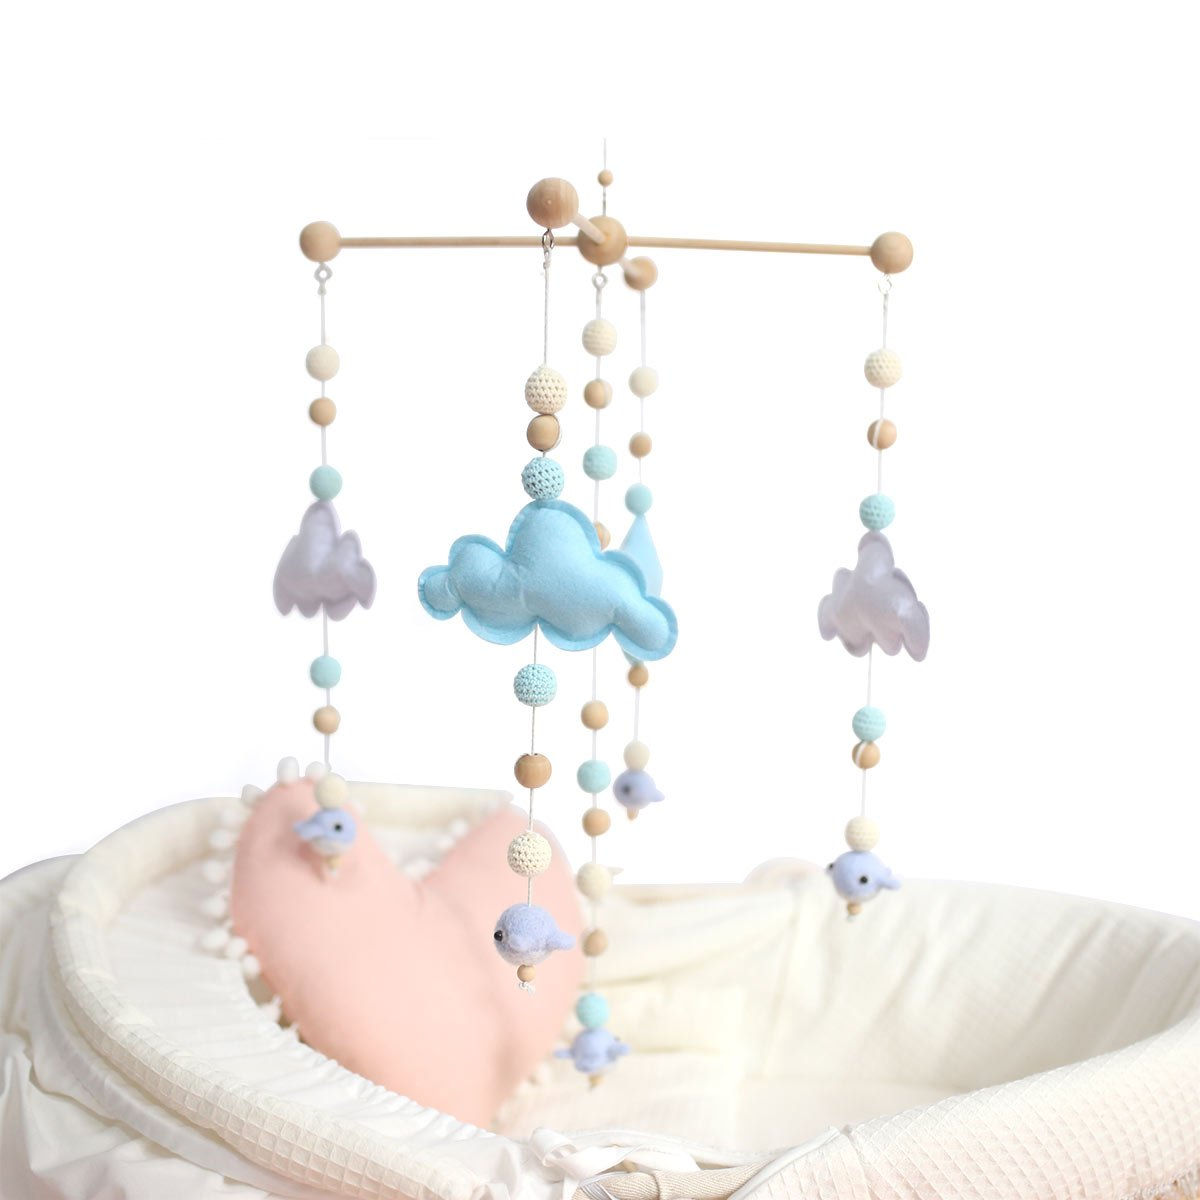 Baby Tete Baby Crib Mobile Bed Bell Silicone Beads Rattles Toys Handmade Nursery Infant Mobile Wooden Wind Chimes Tent Hanging